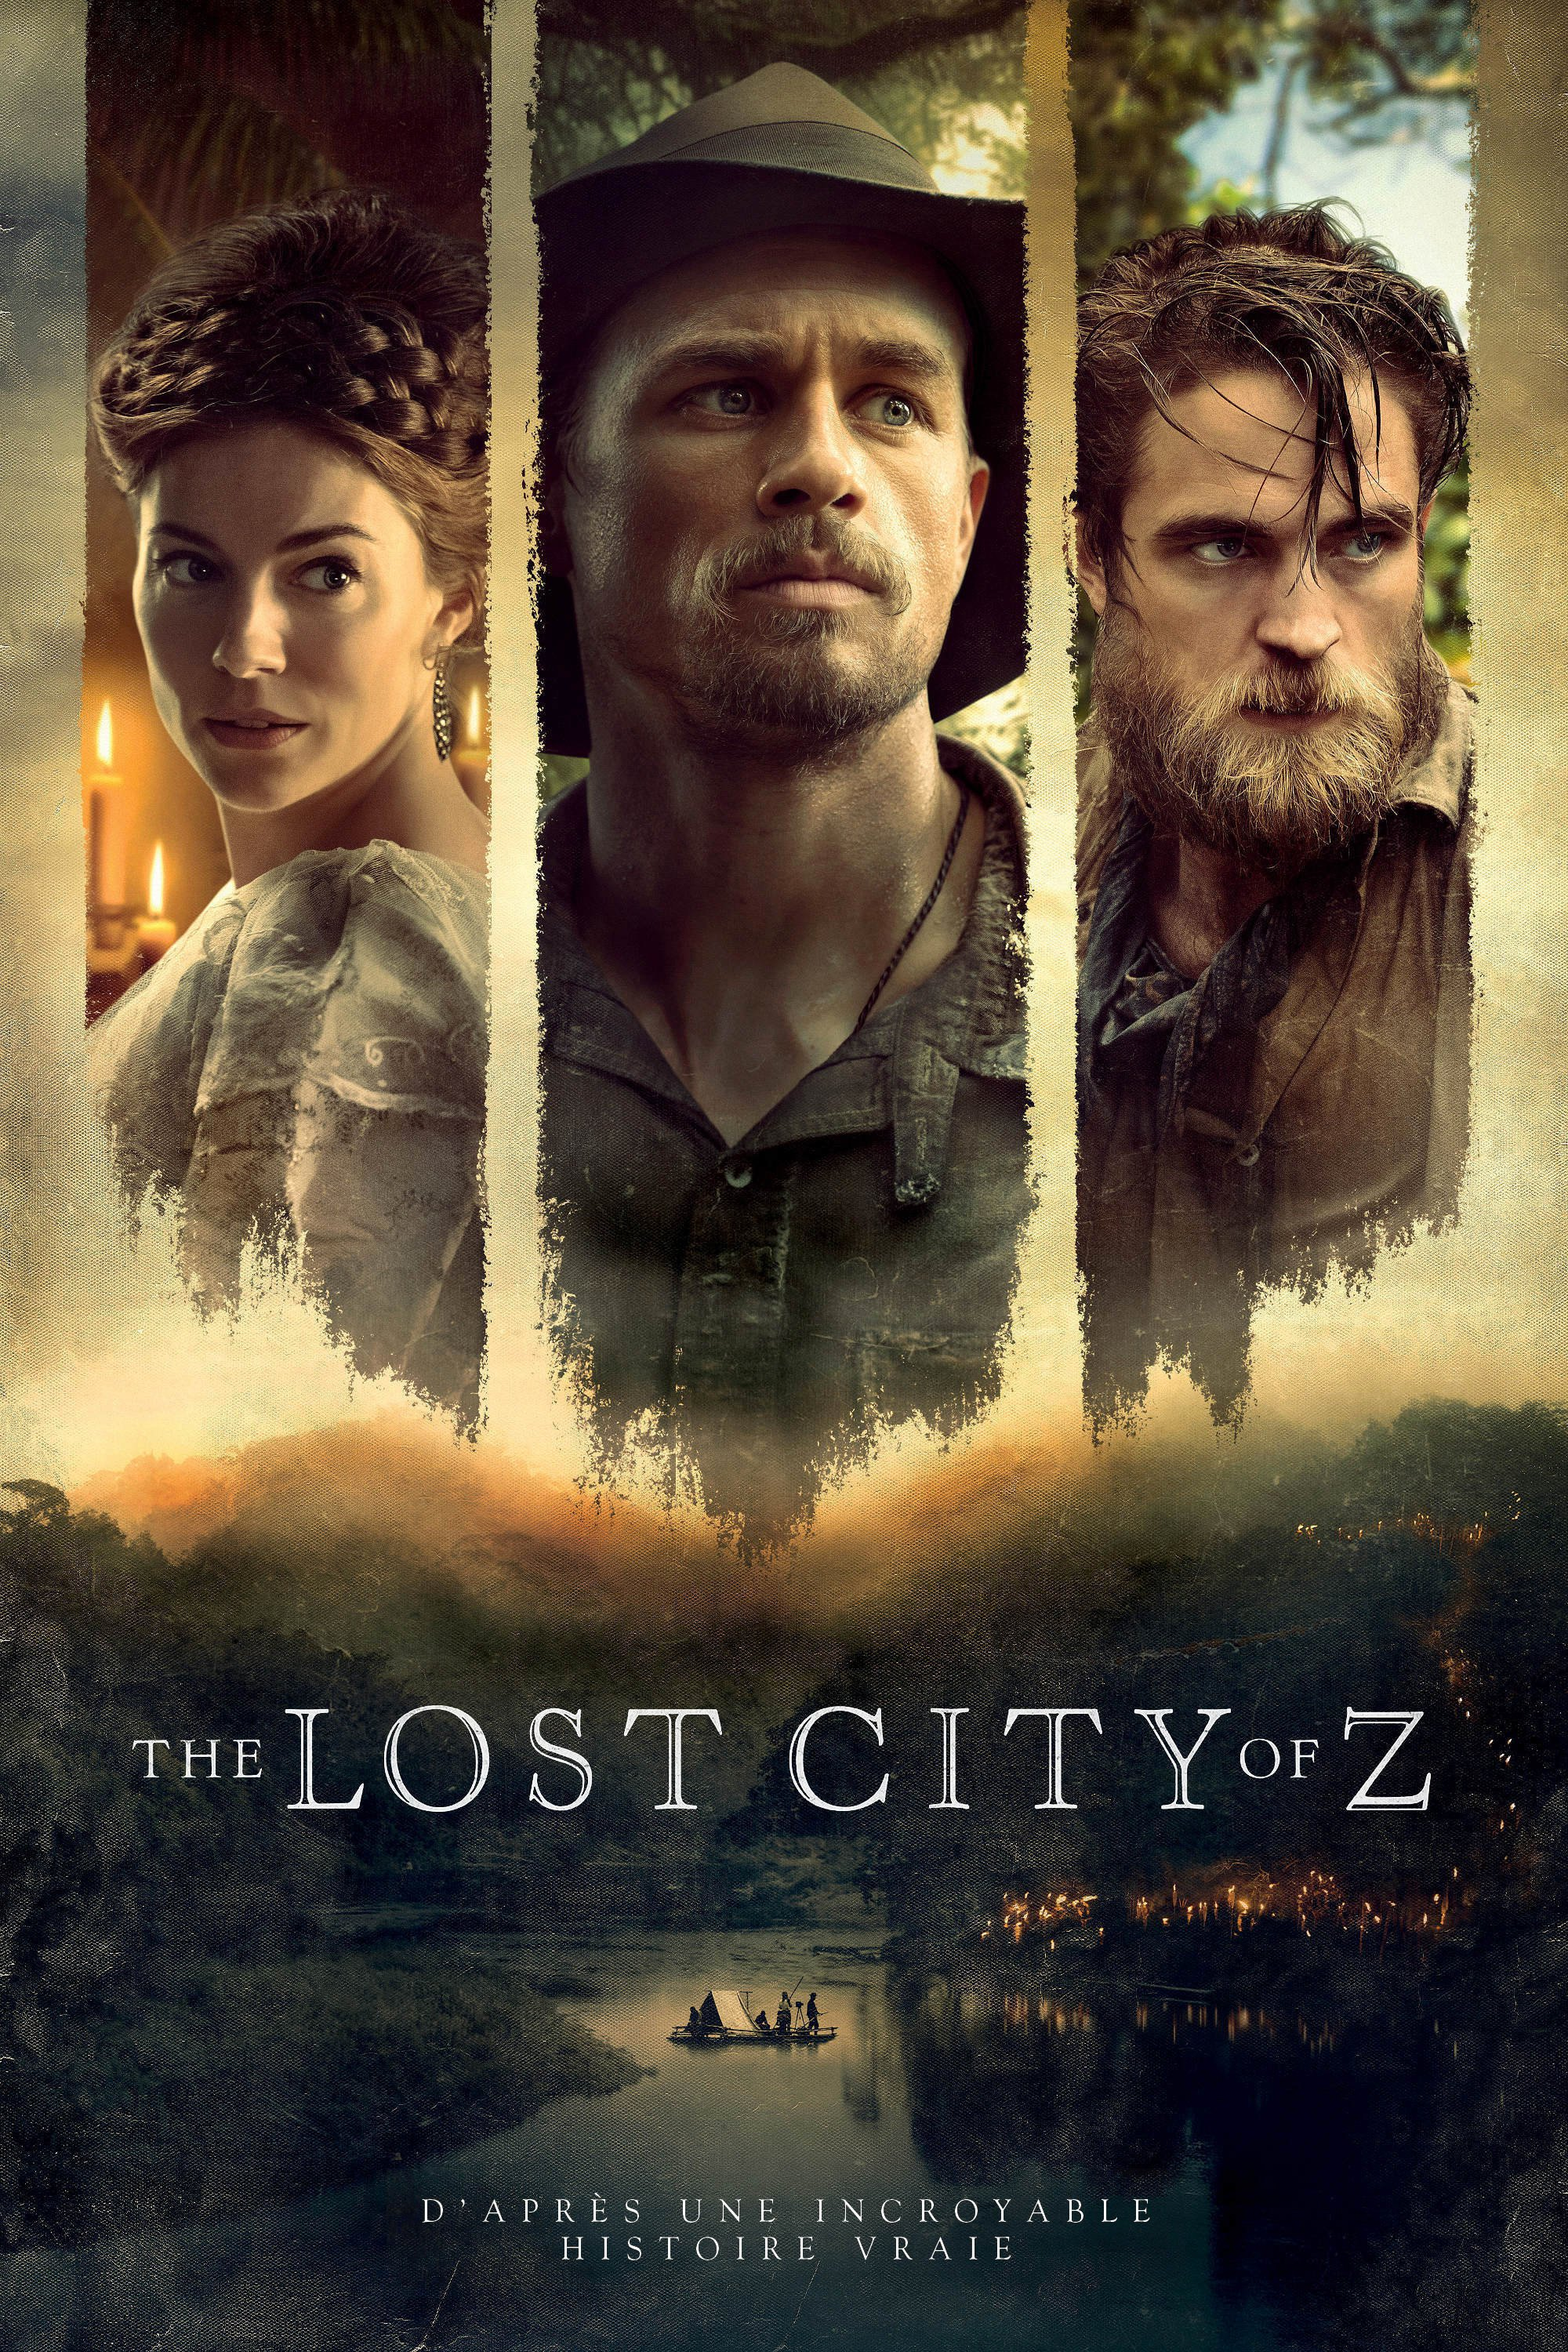 Regarder The Lost City of Z en streaming gratuit